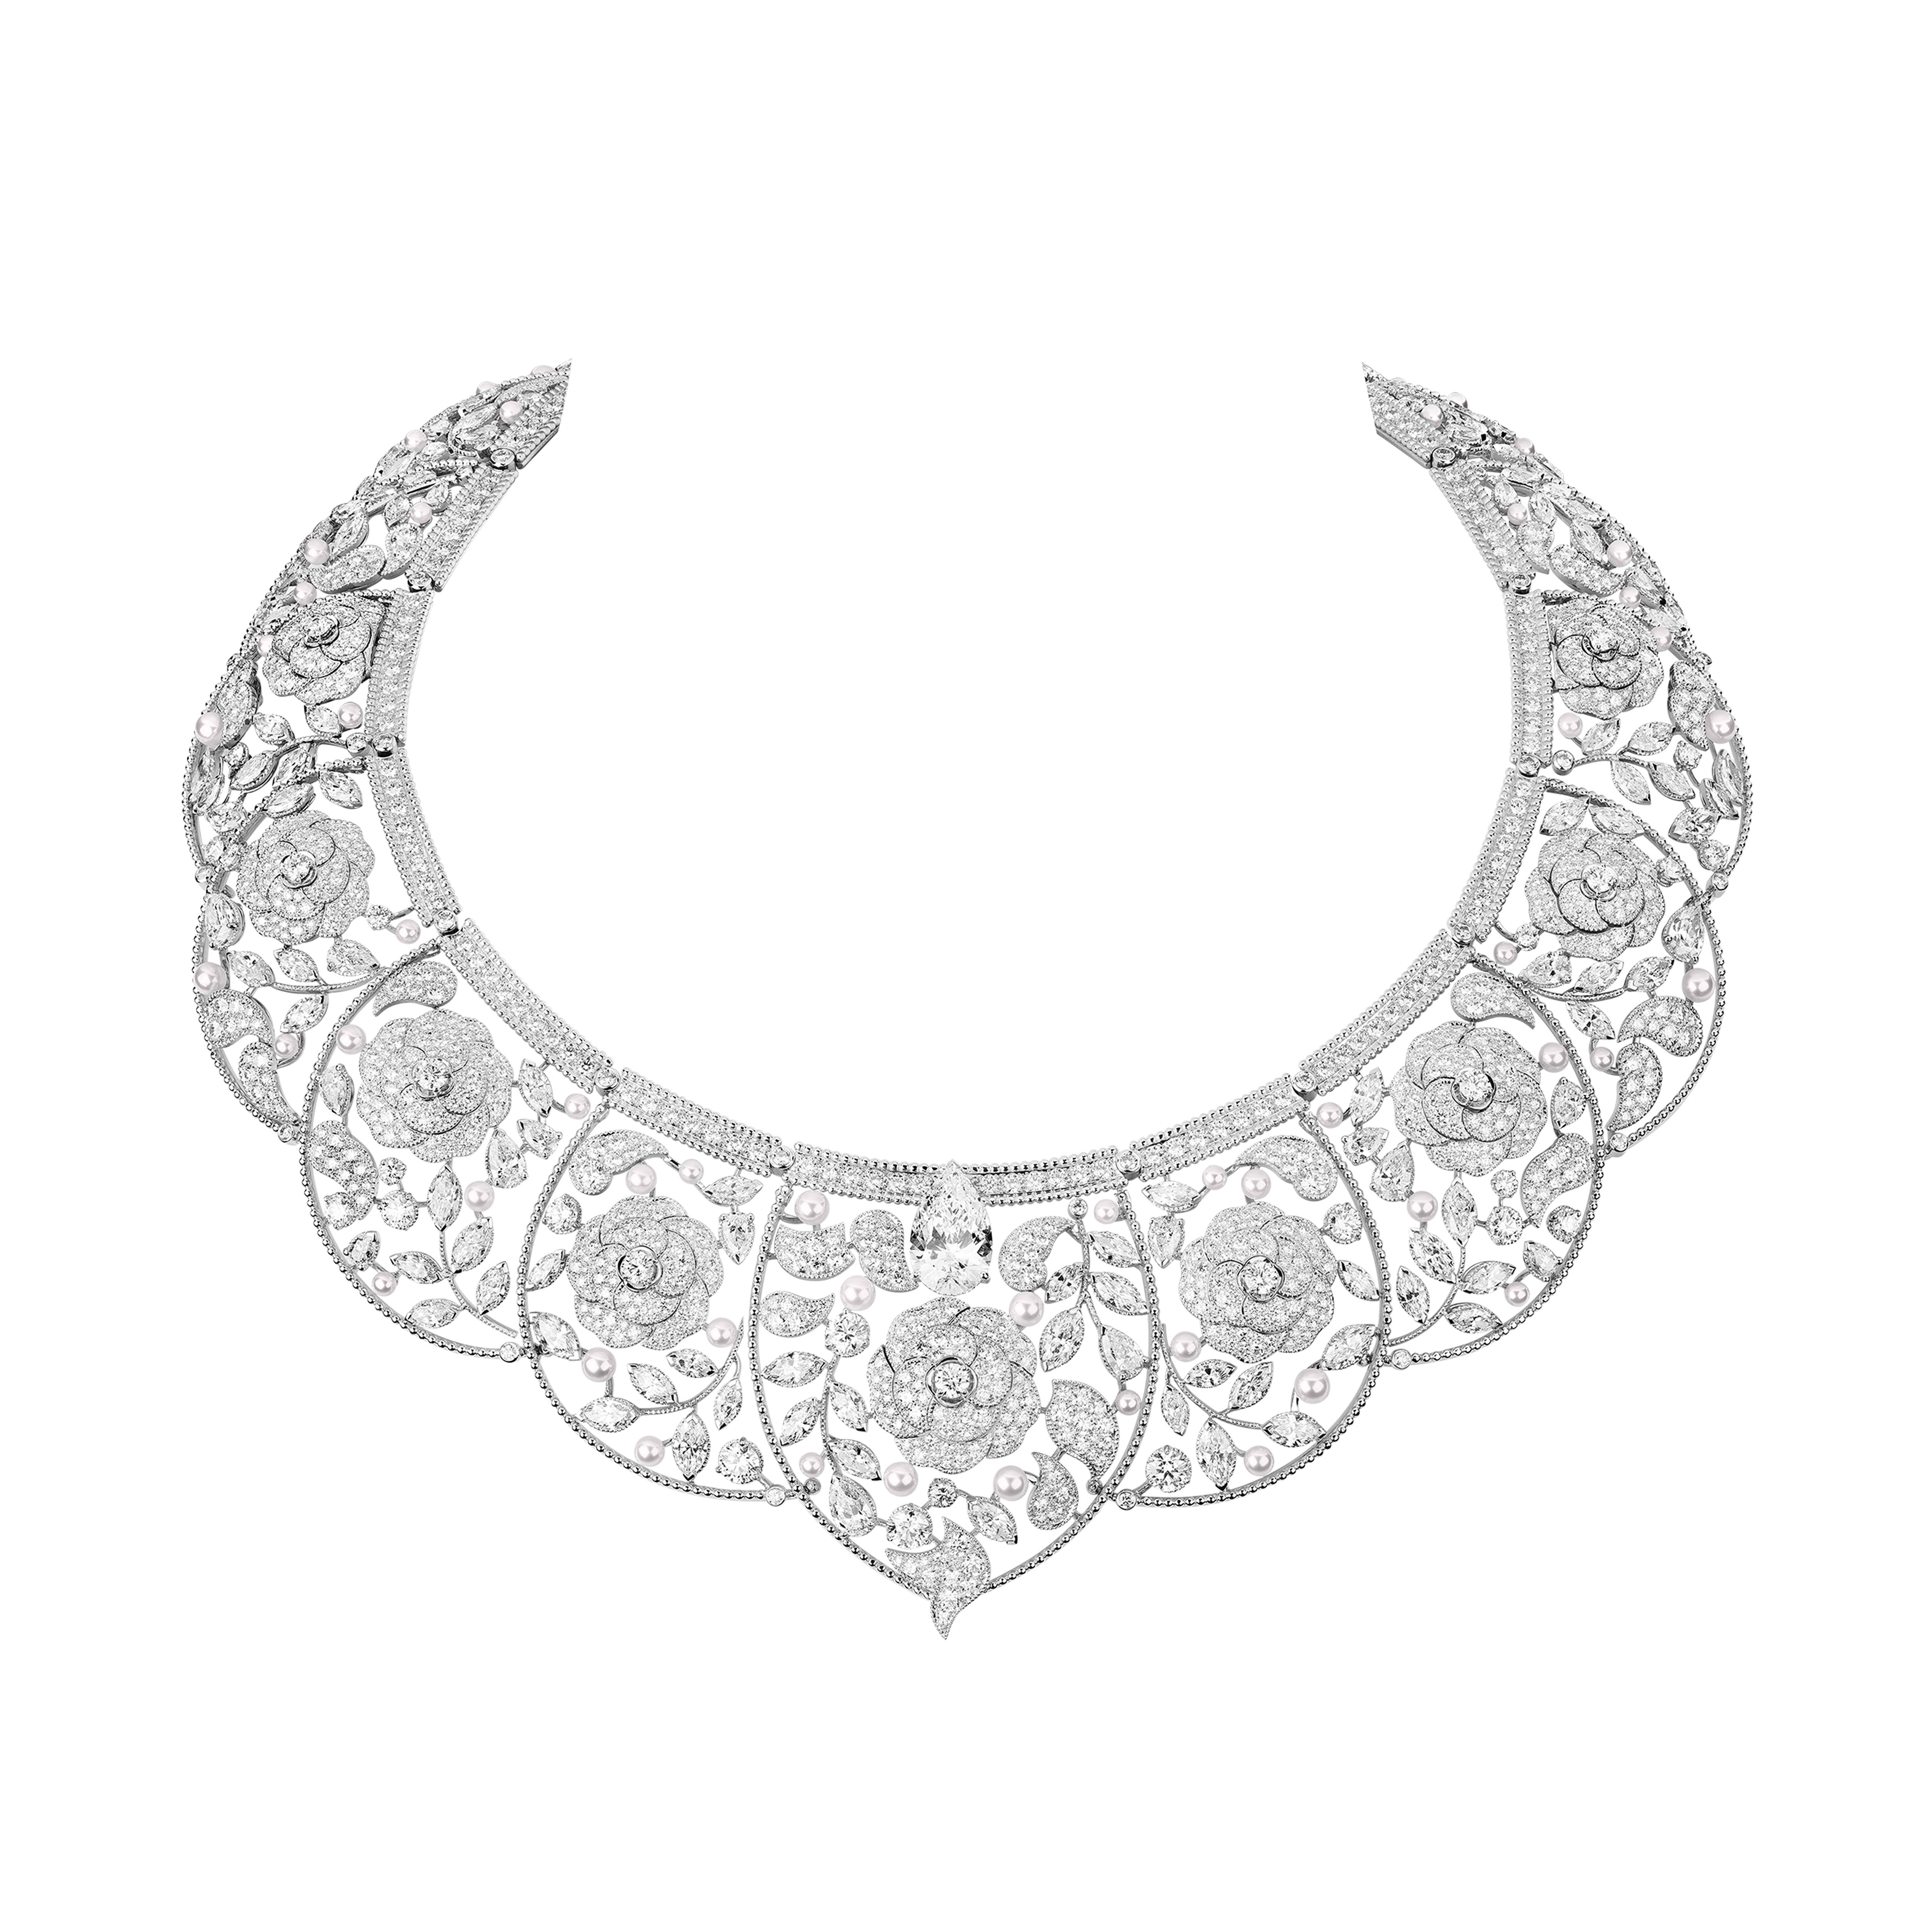 e473272c7 Chanel's Sarafane headpiece necklace in white gold, cultured pearls and  diamonds